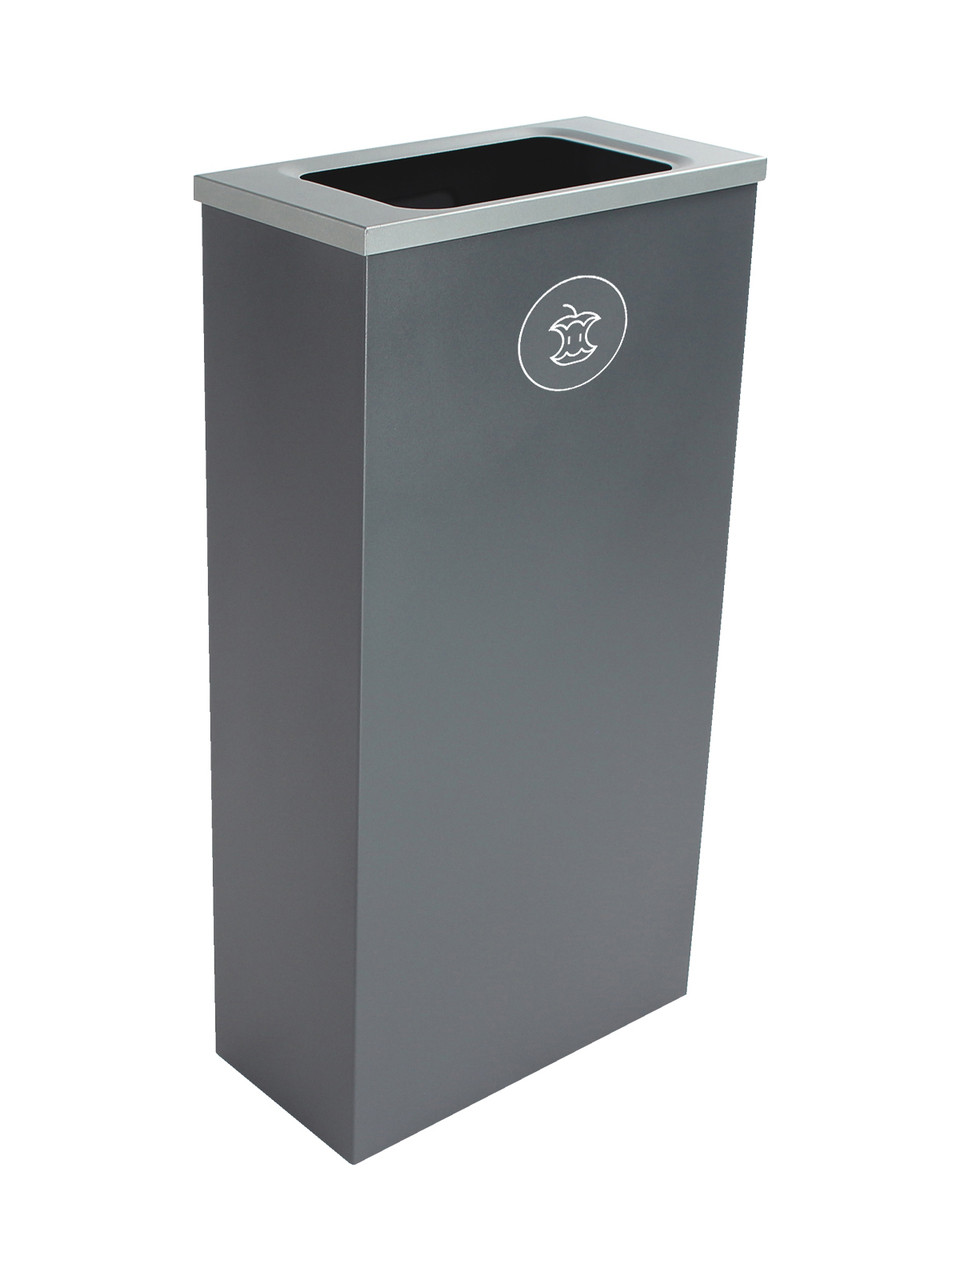 10 Gallon Steel Spectrum Slim Compost Bin Gray 8107071-4